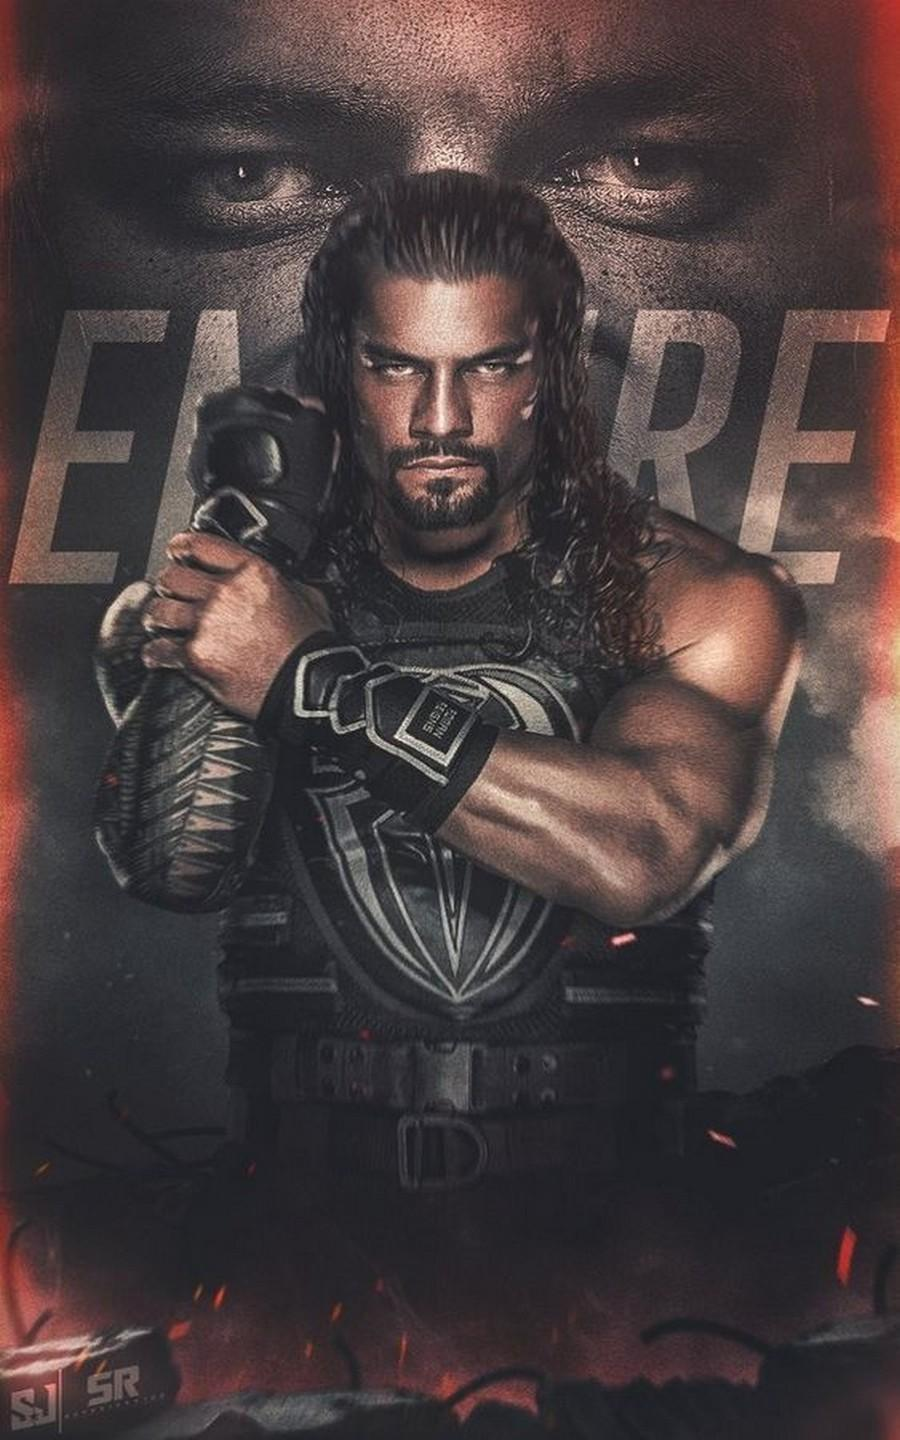 Roman Reigns Hd Wallpapers For Android Apk Download